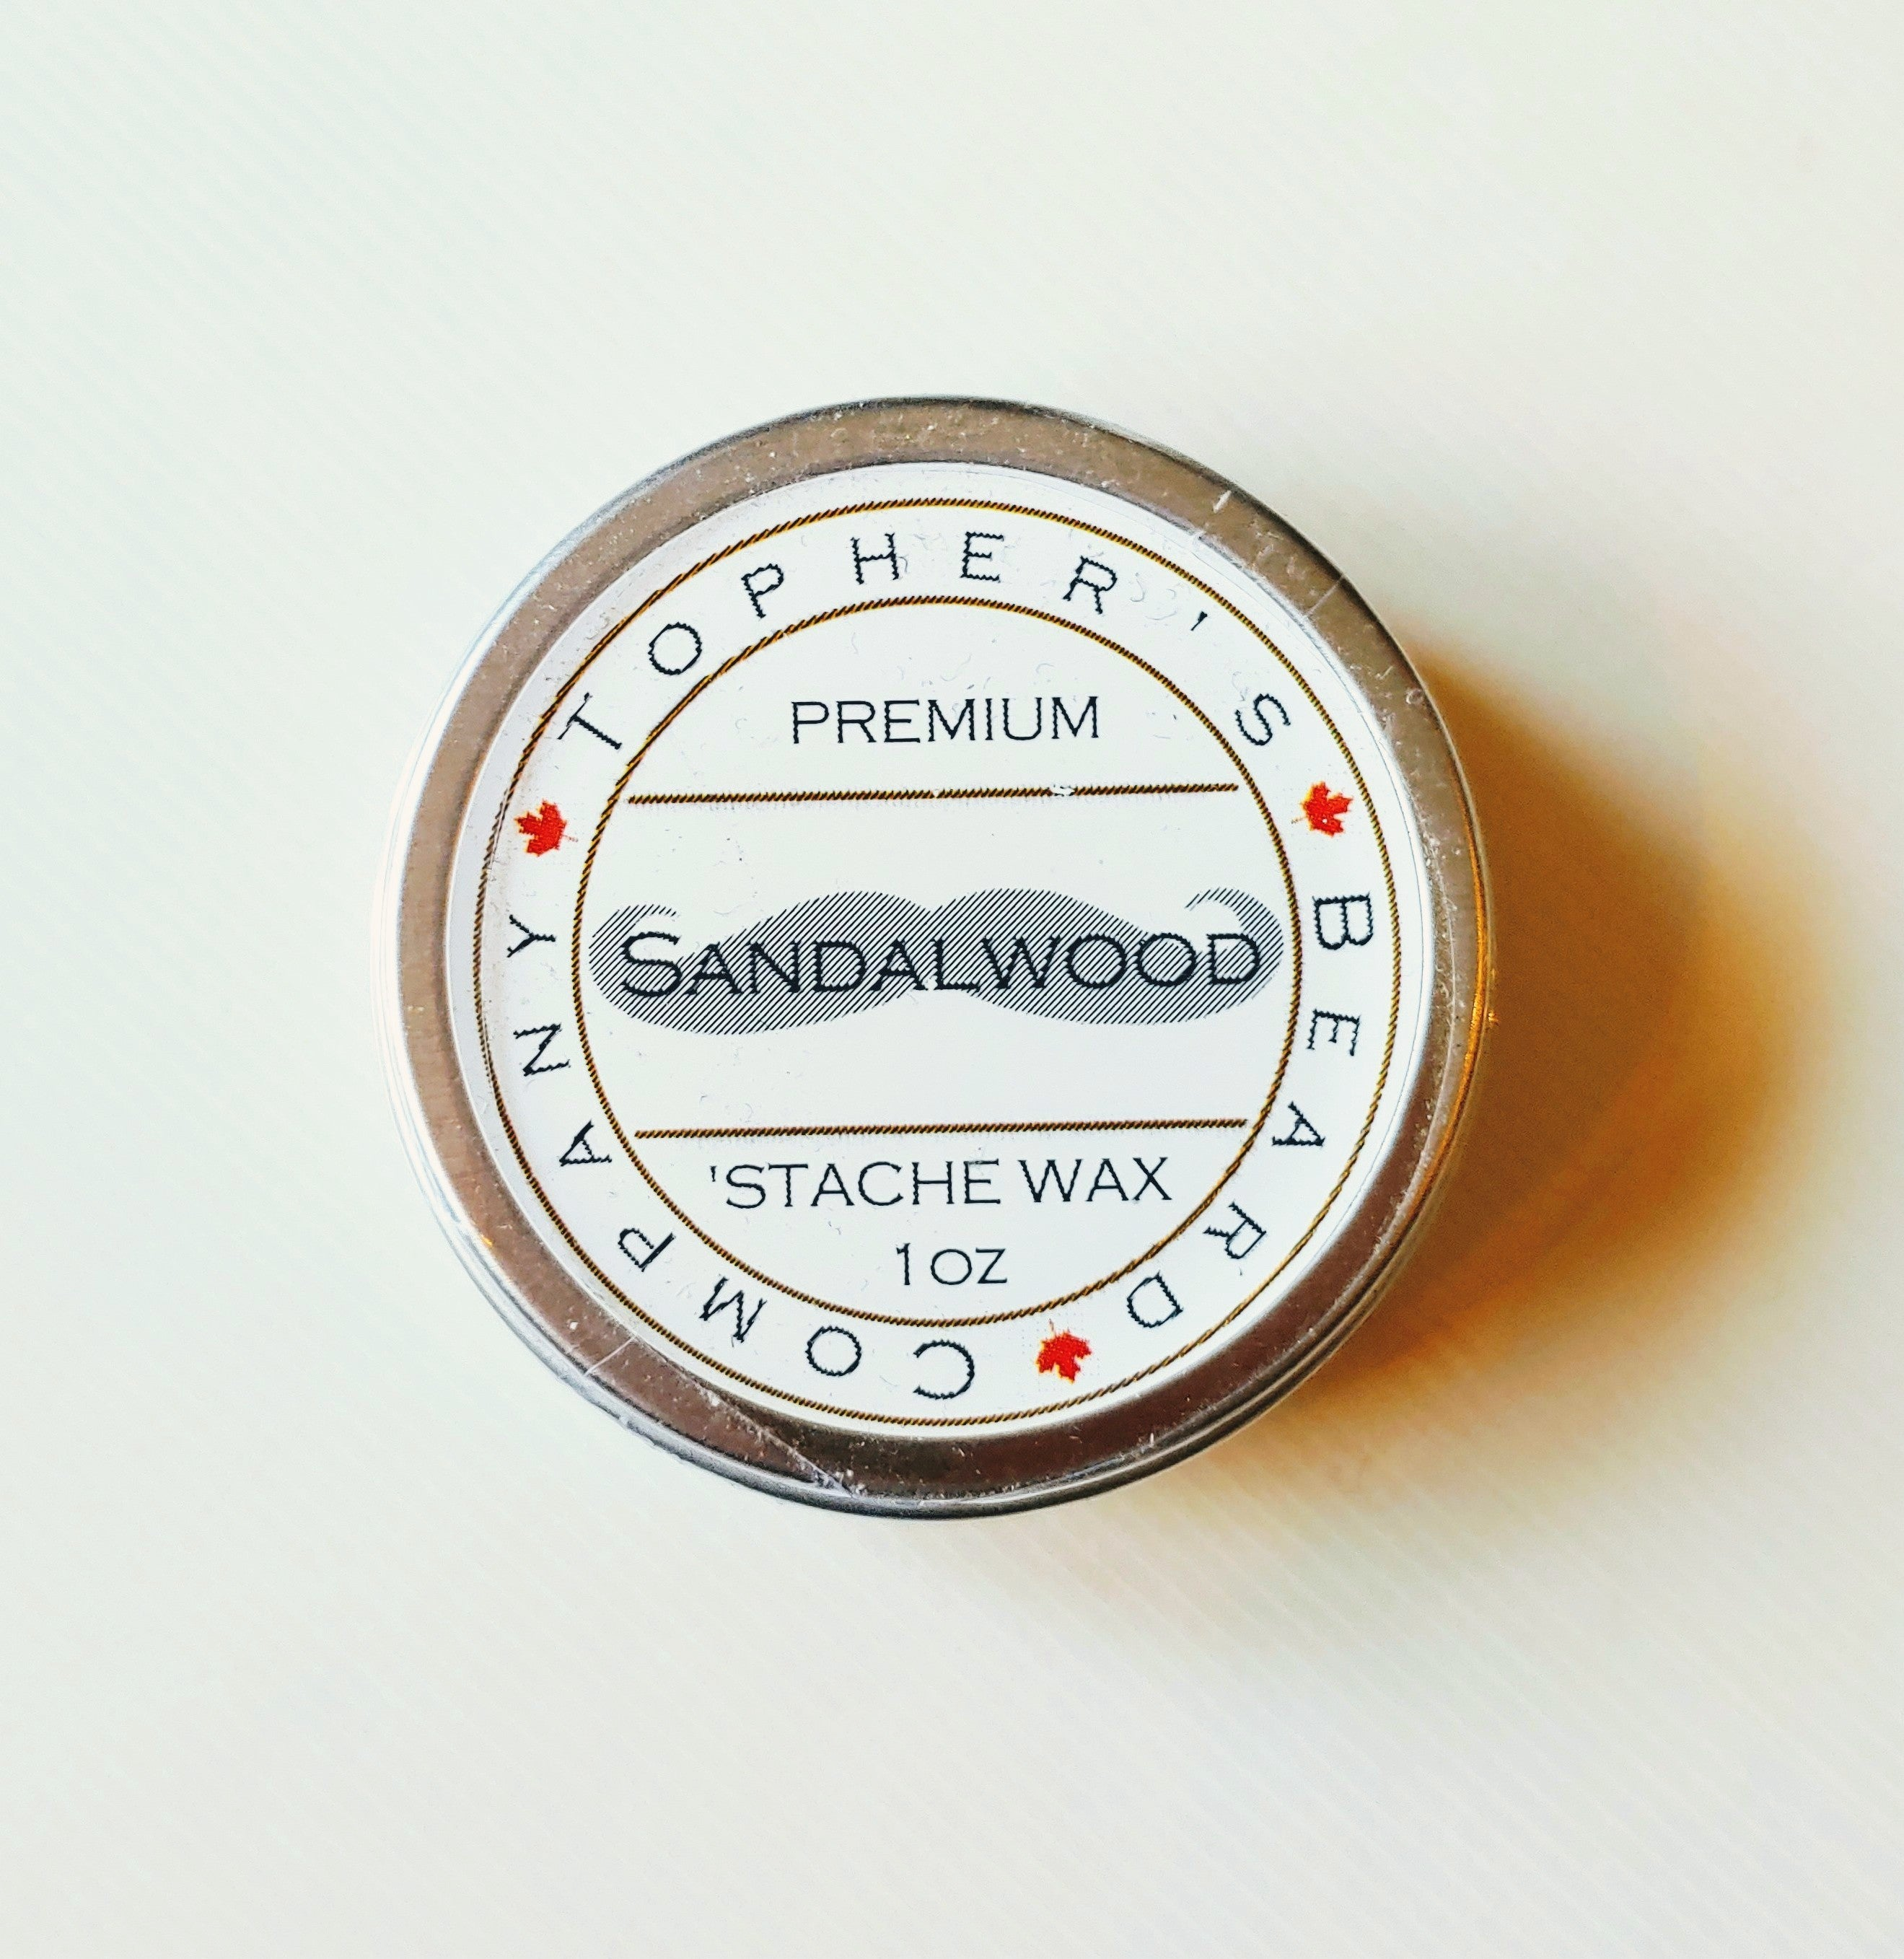 Sandalwood Premium Stache Wax